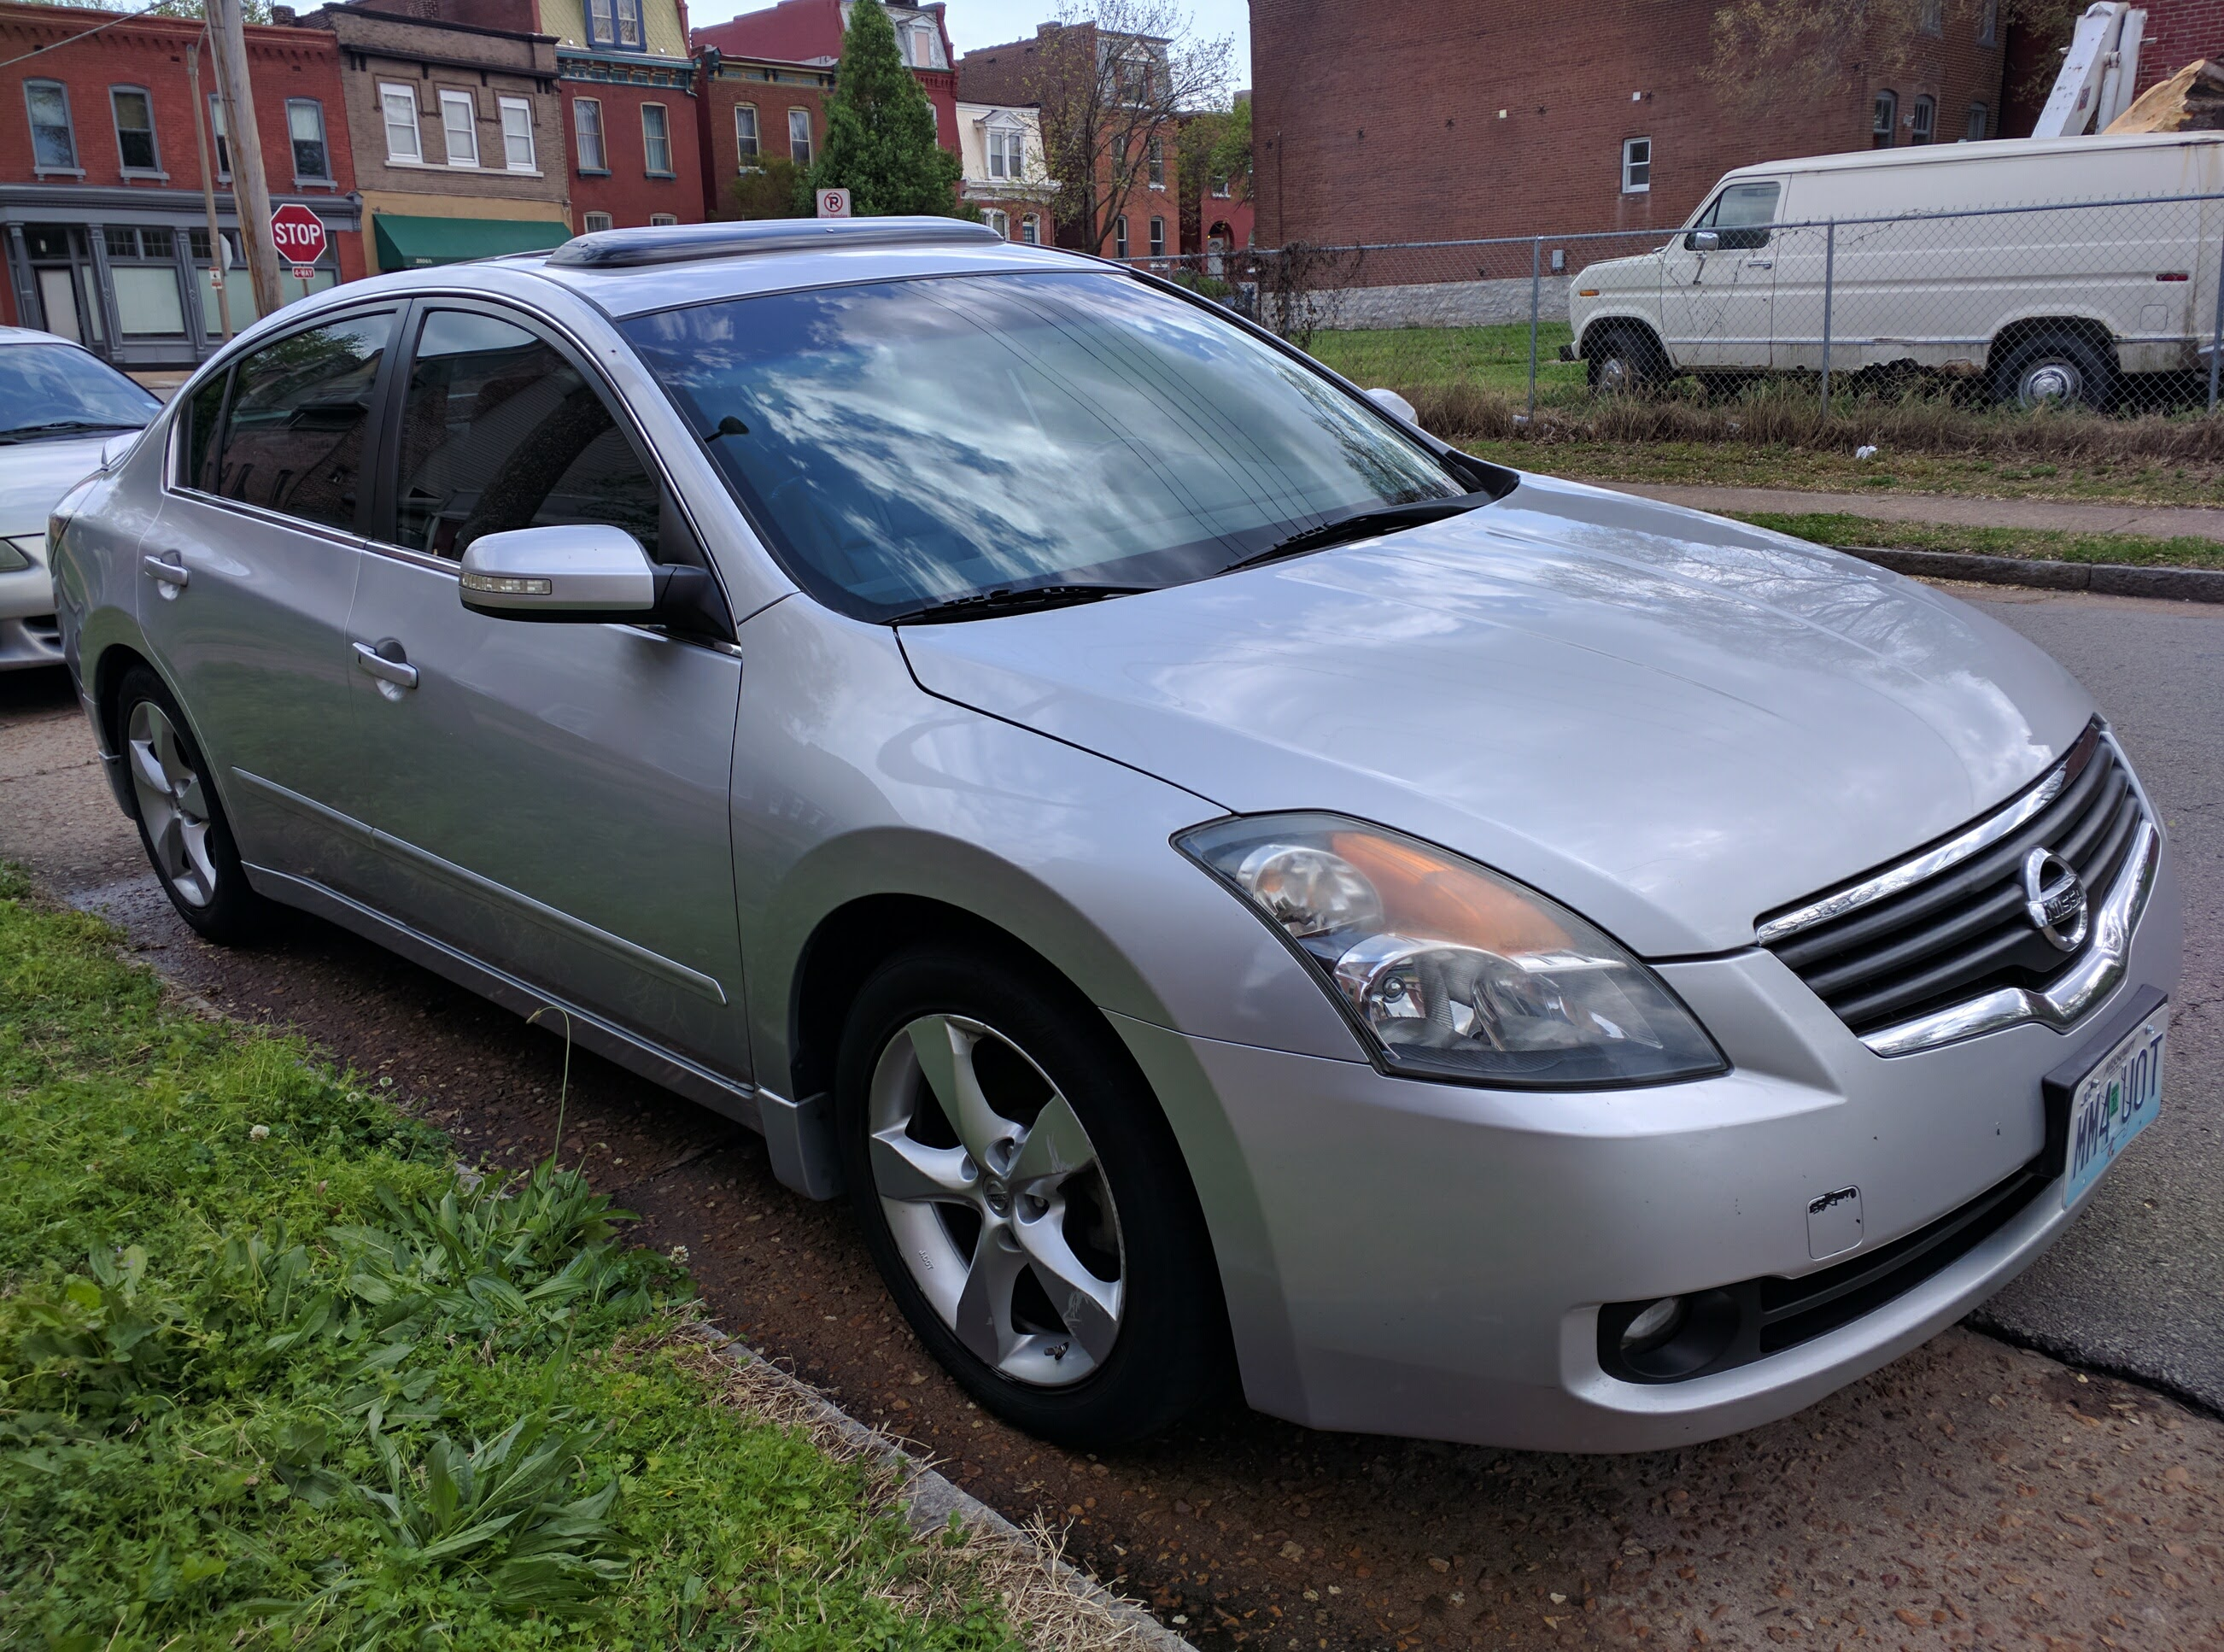 Tech Review The 2008 Nissan Altima 3 5se The Toilet Ov Hell